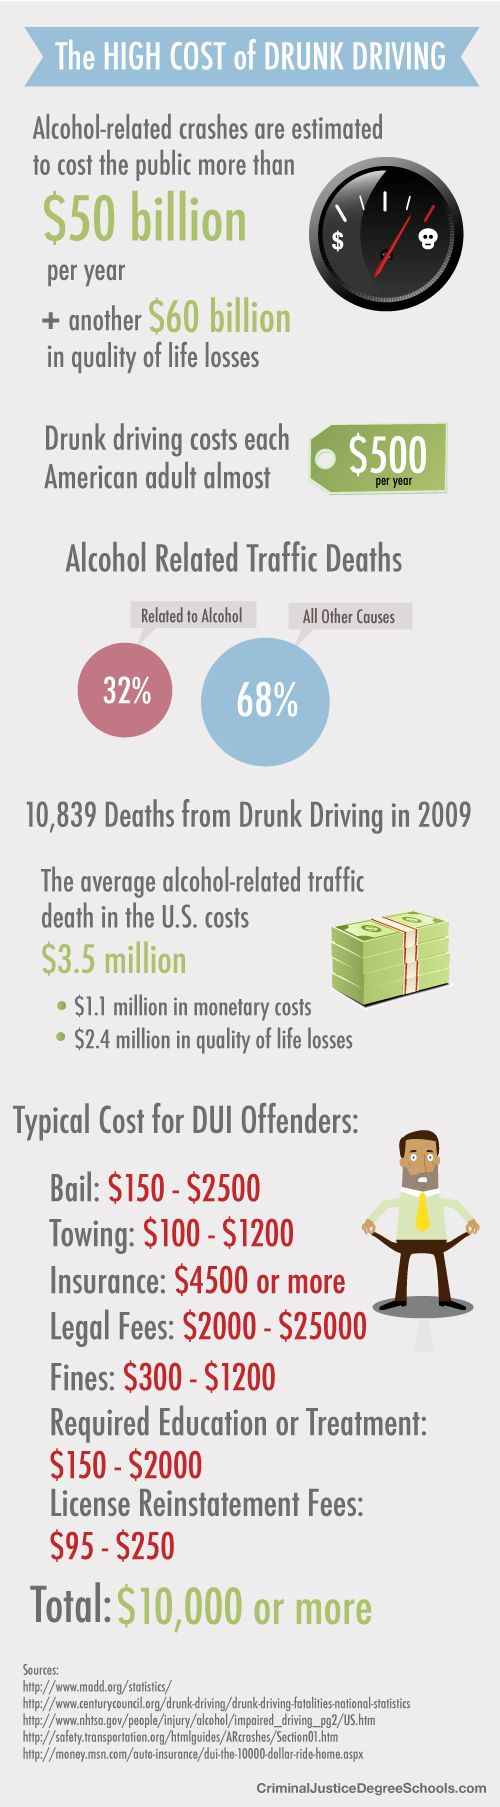 High cost of drunk driving!  Please don't drink & drive.  It kills innocent people!